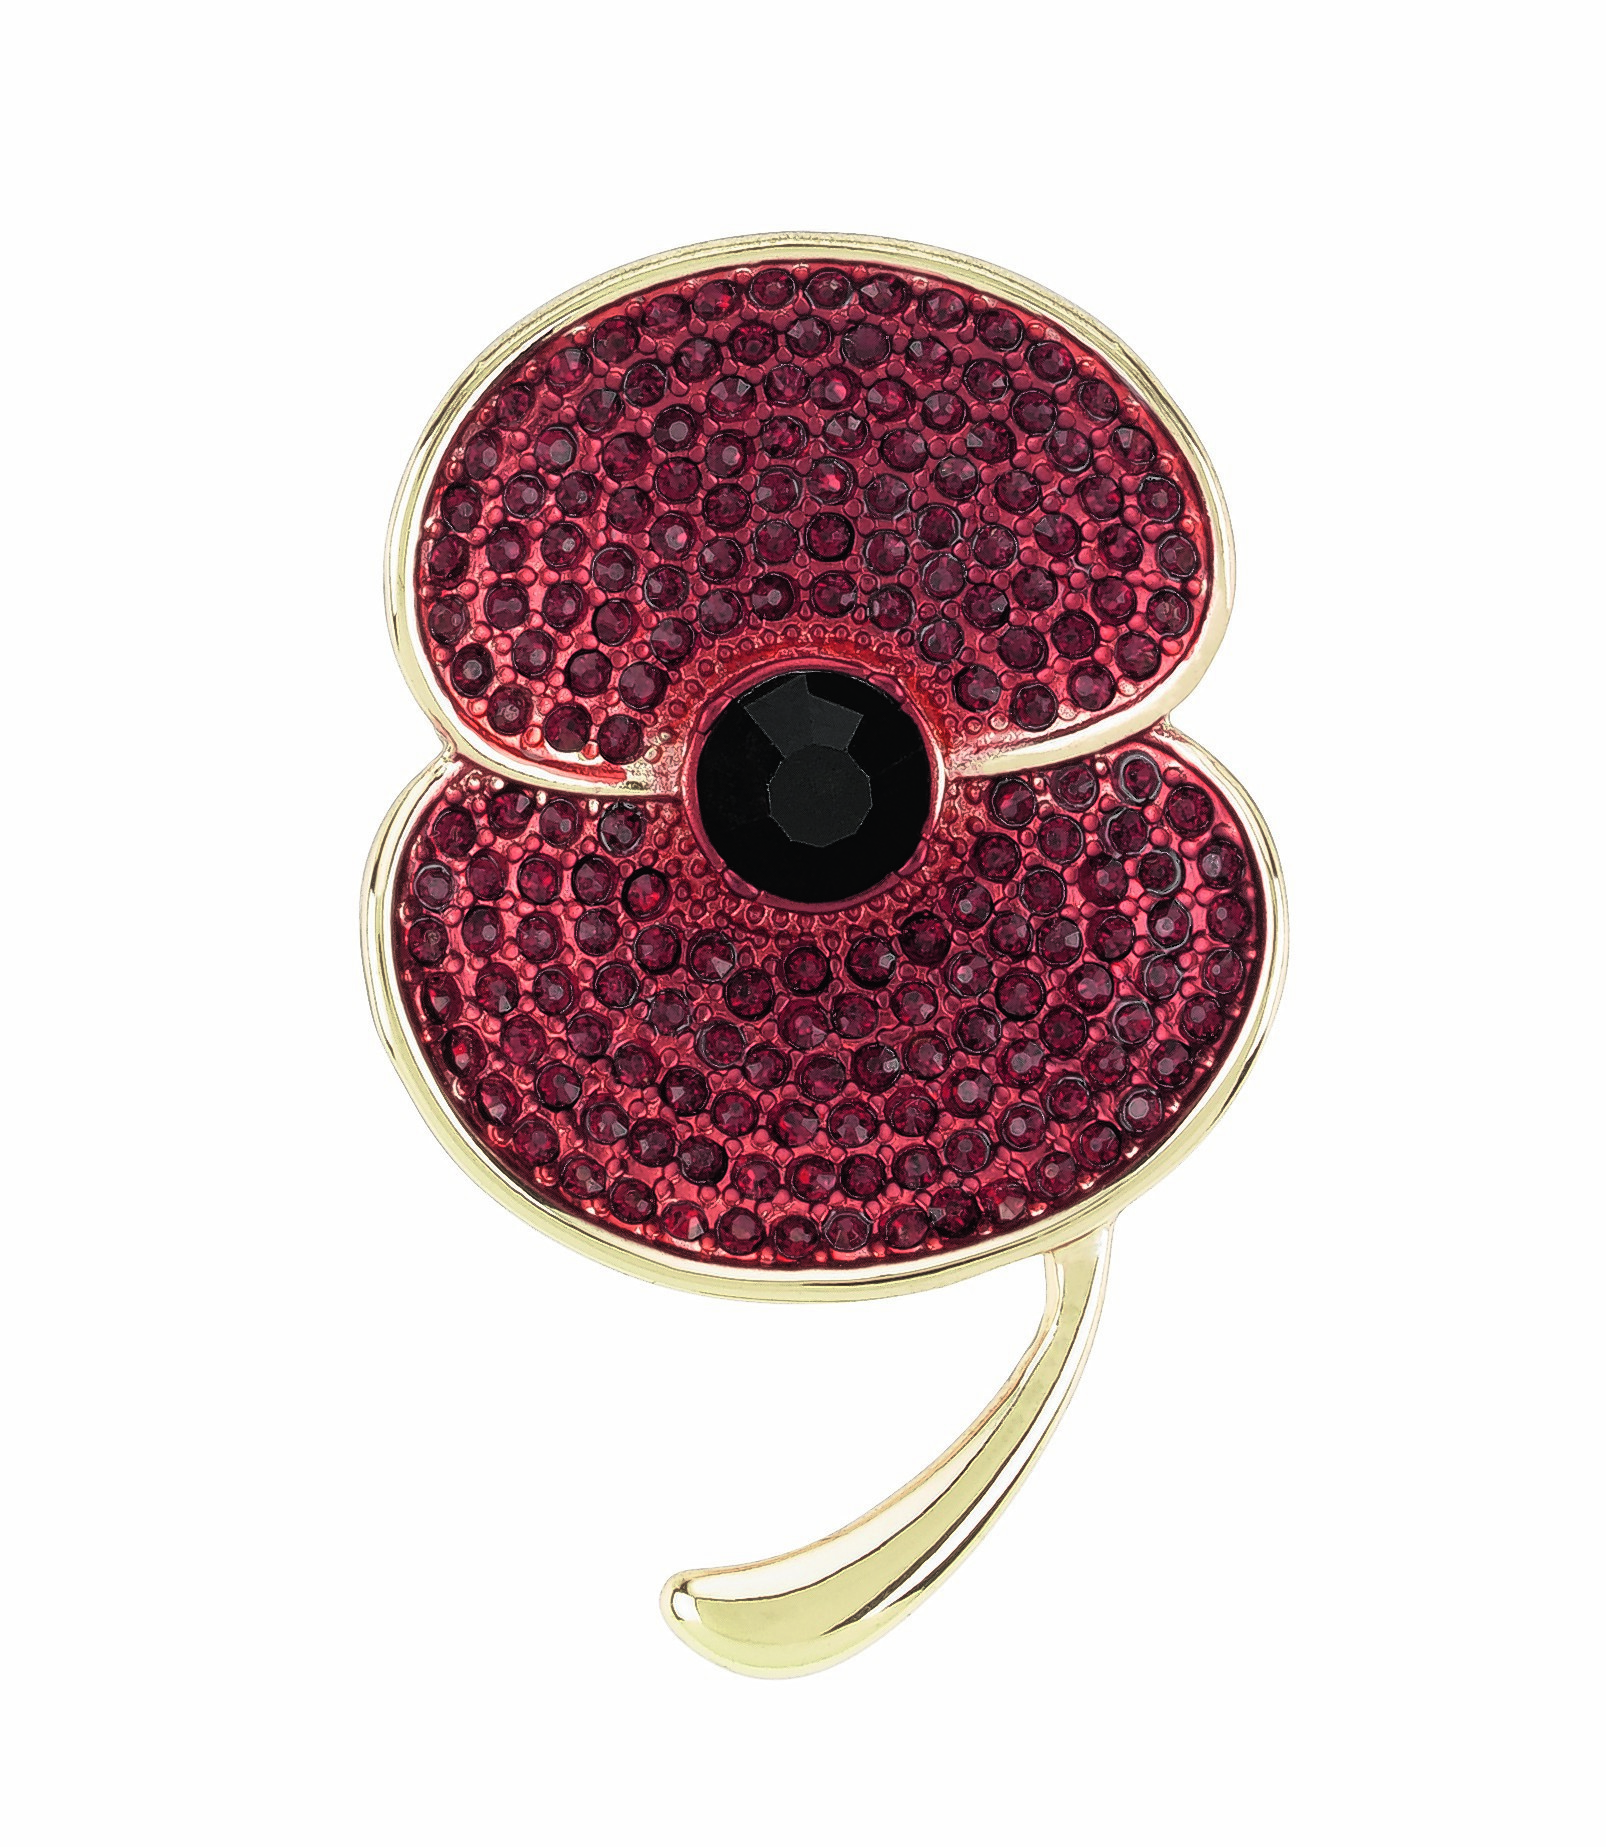 M&S COLLECTION LARGE POPPY BROOCH  £25SMALL POPPY BROOCH £15